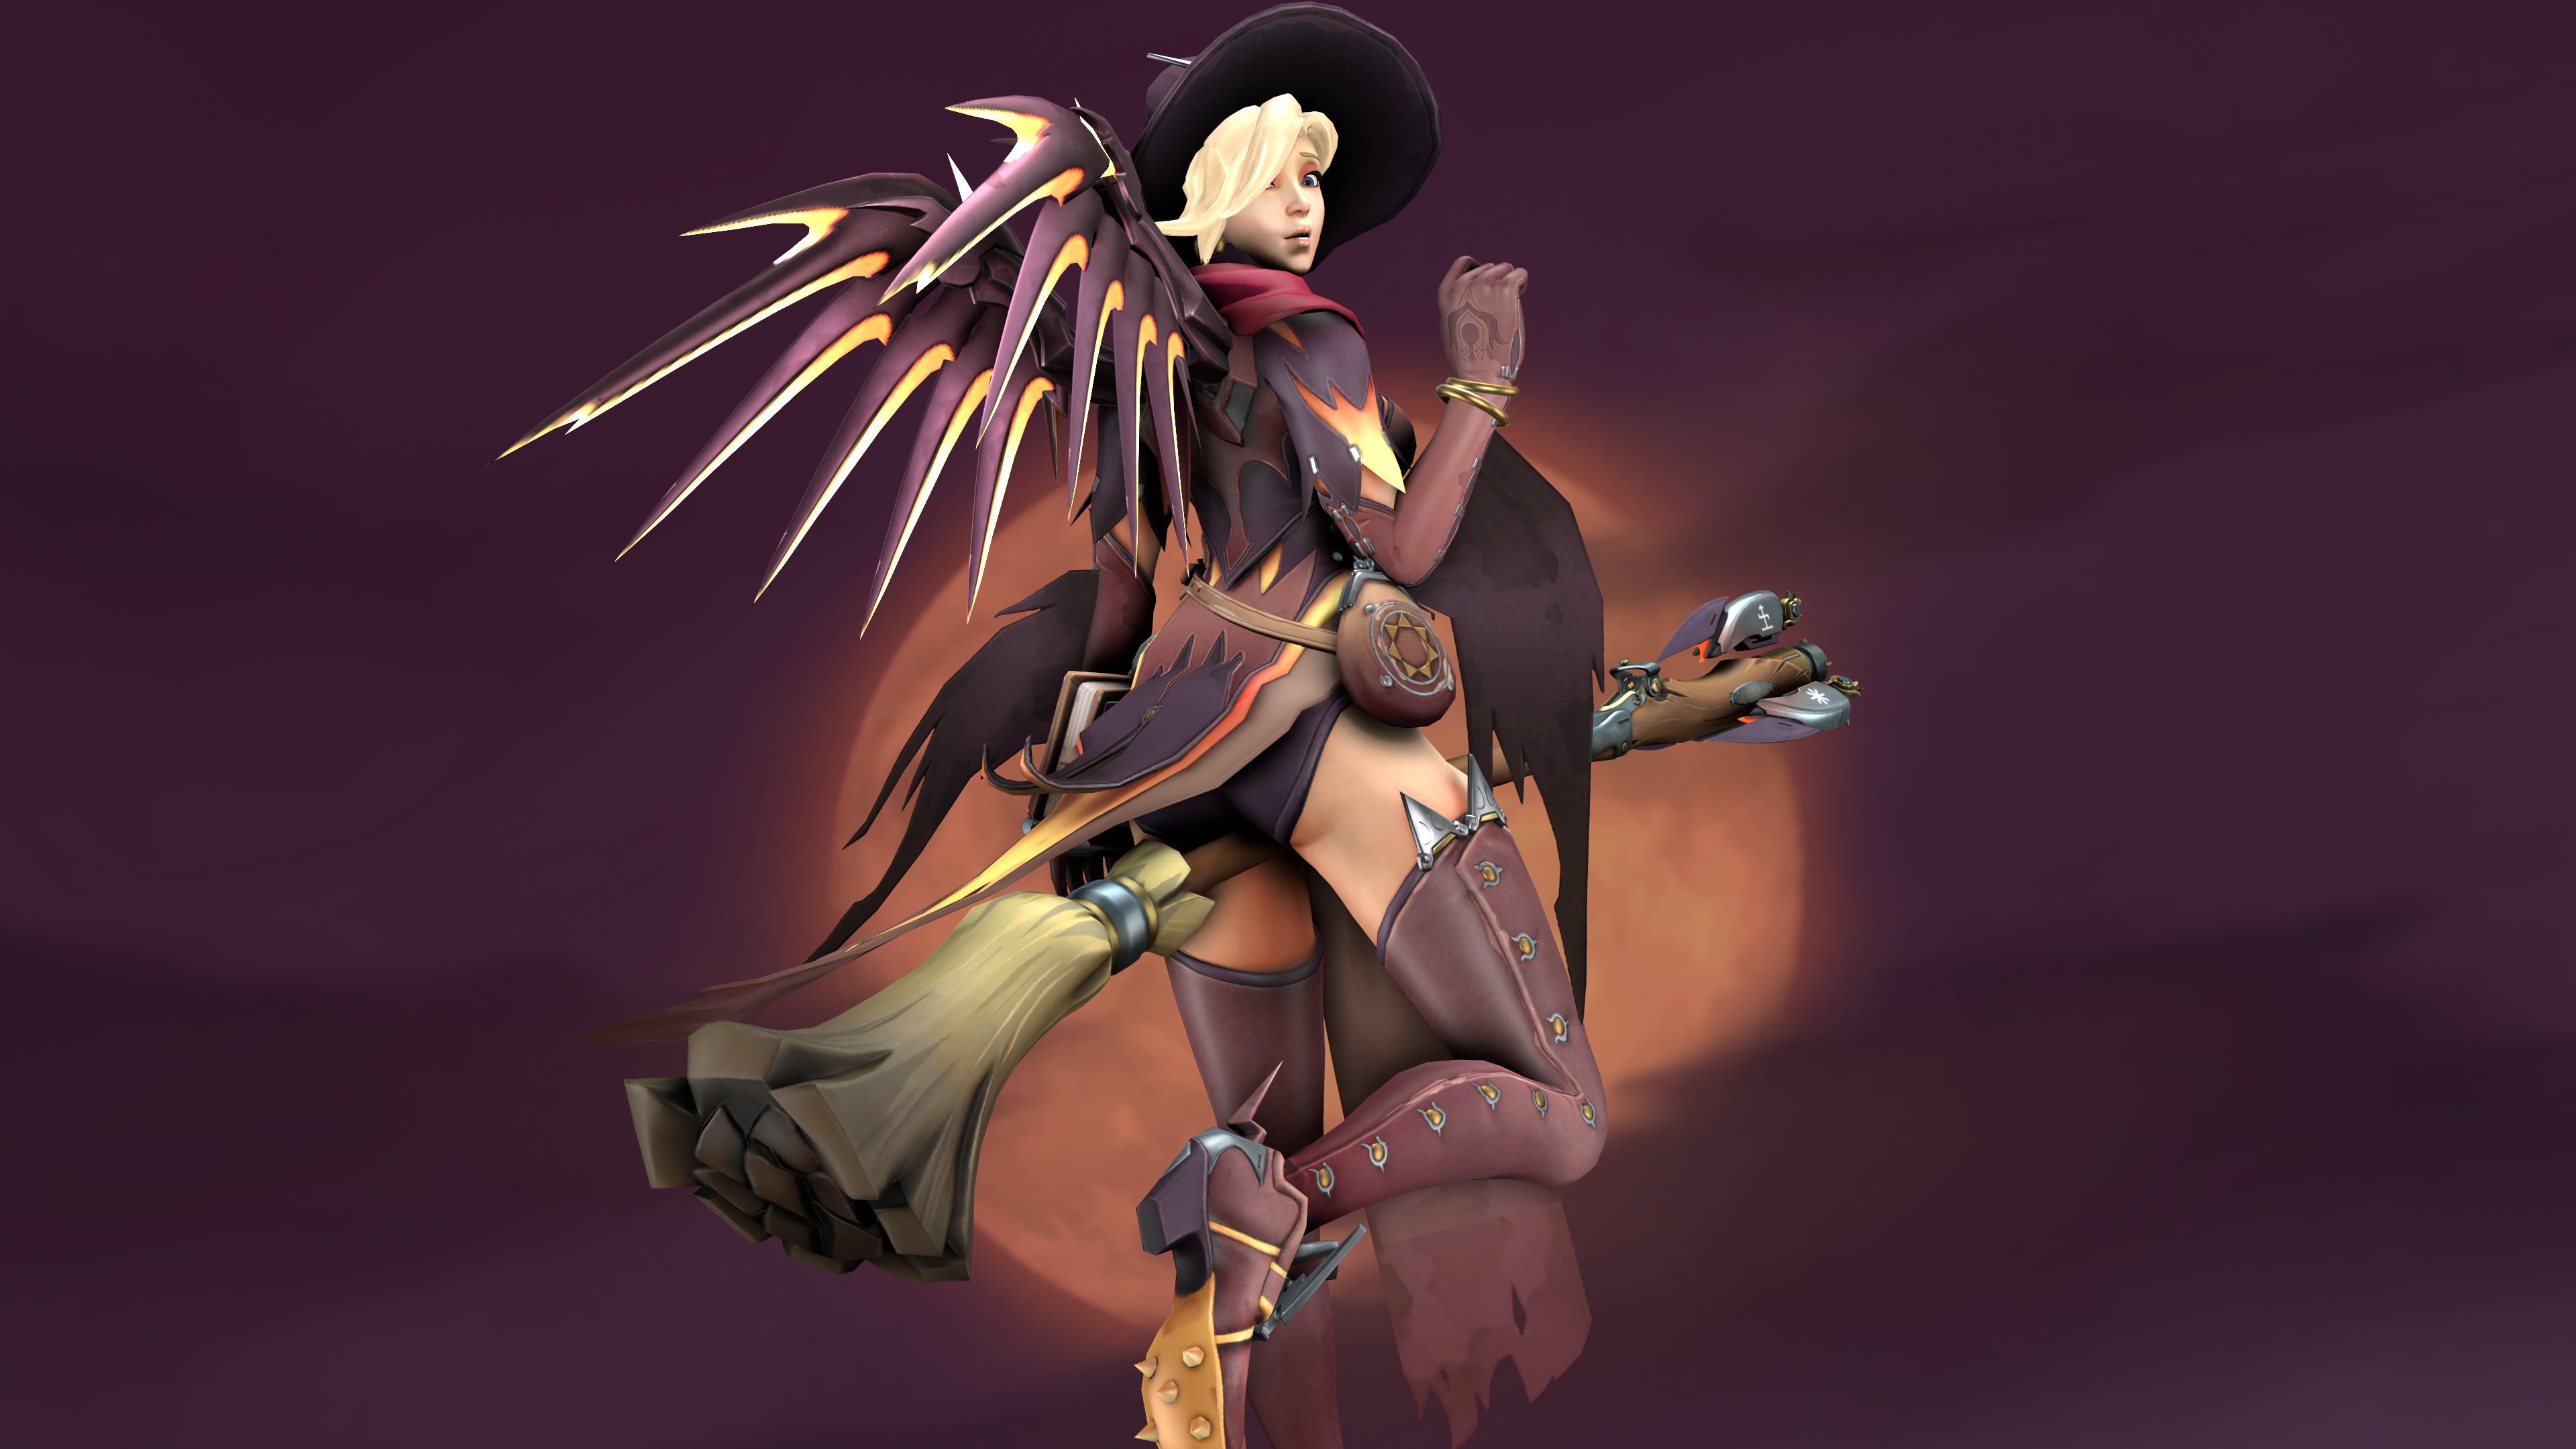 Witch Mercy 4 (4K) by CJWong34 on DeviantArt